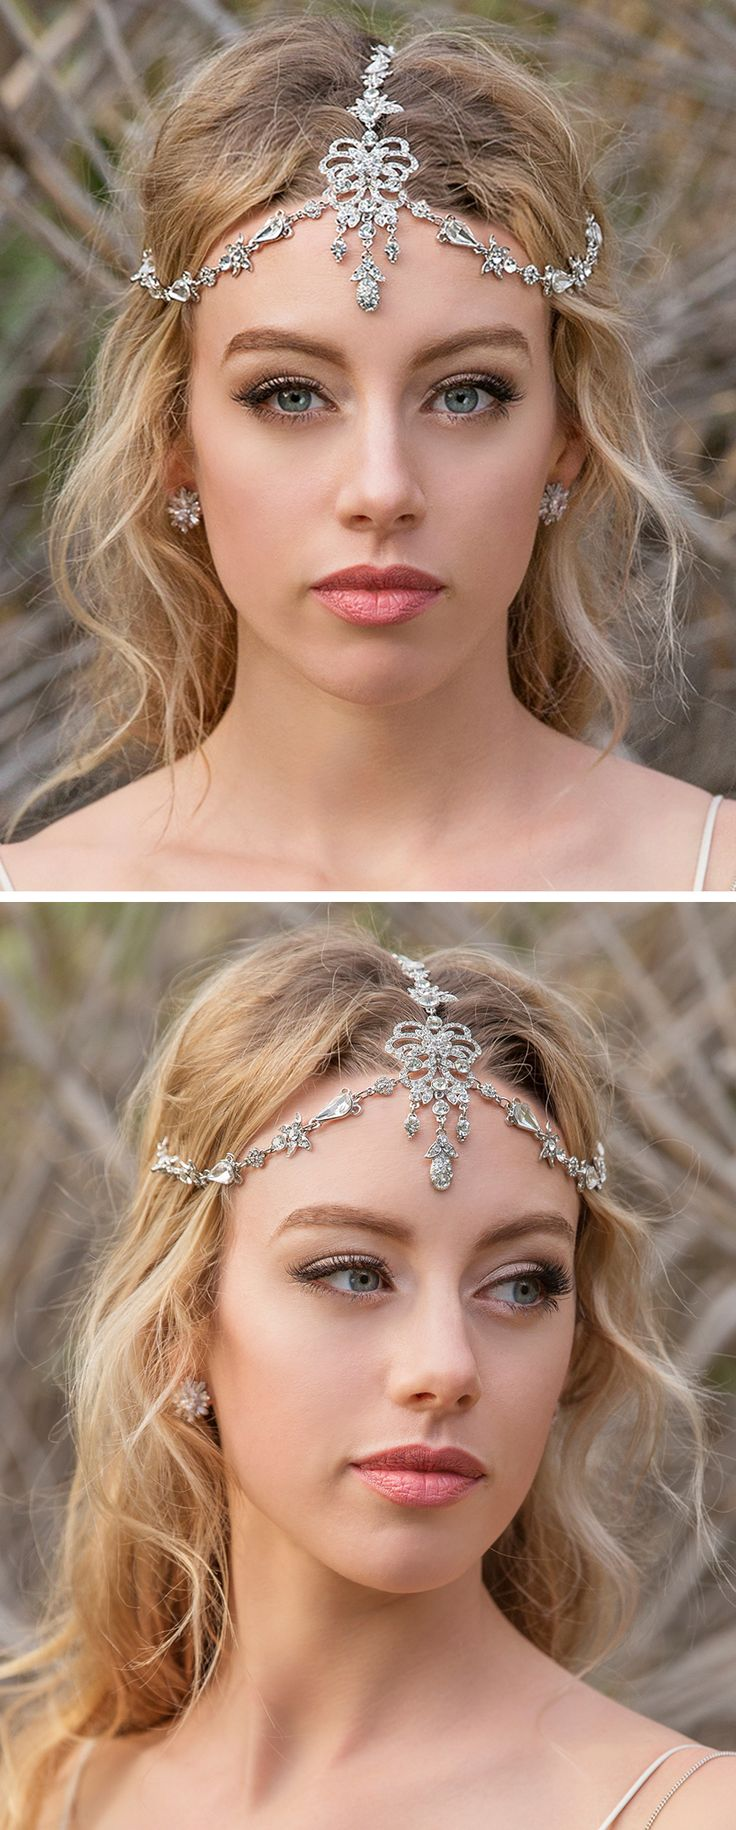 Silver Swarovski Crystal Headpiece, Art Deco Bridal 1920s Headpiece Bohemian Accessories for Wedding, Bridal Hair